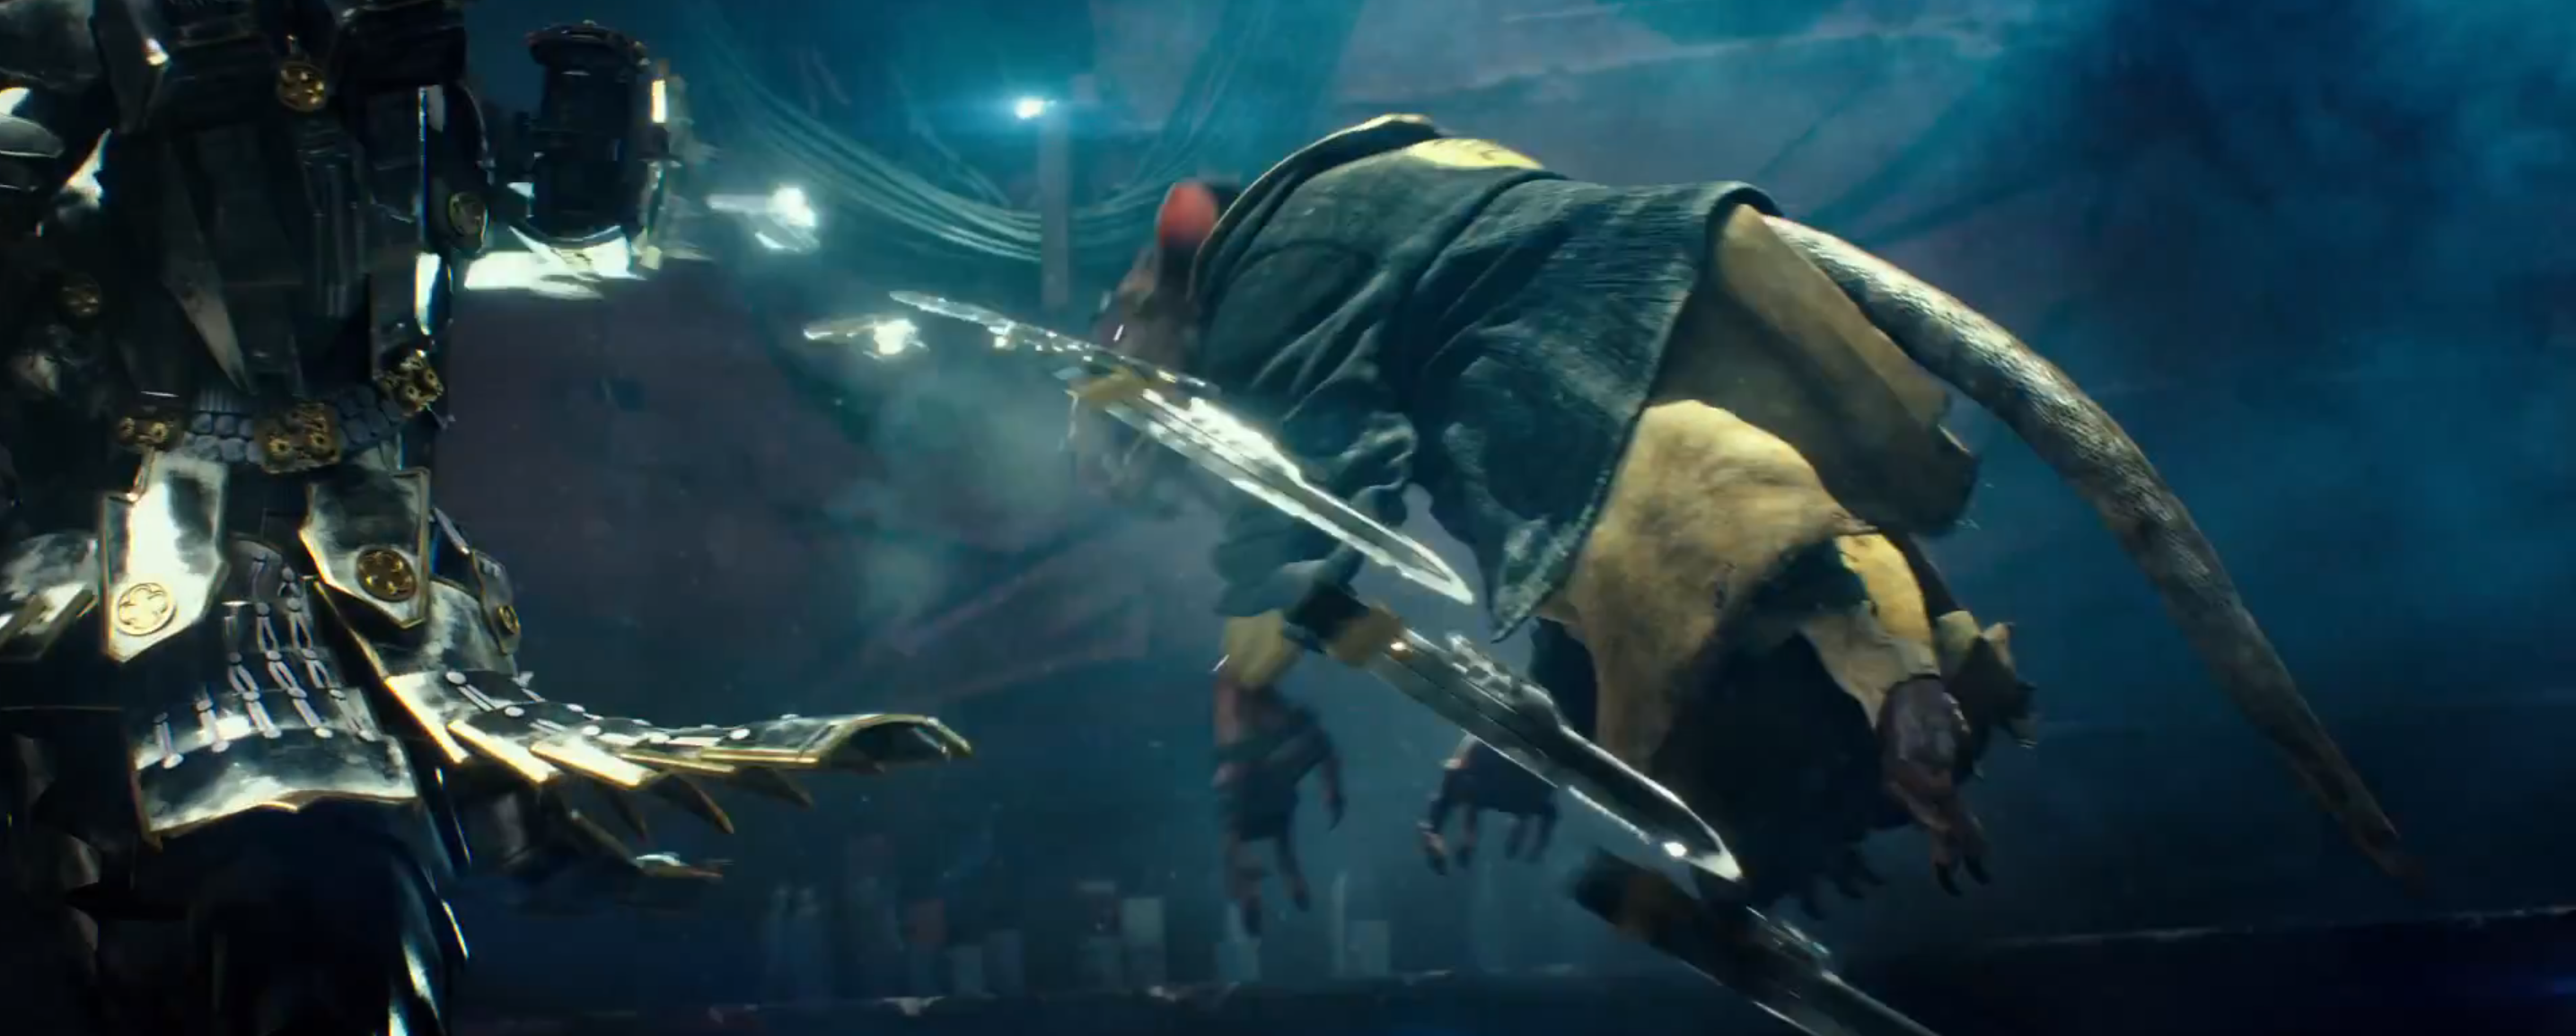 Teenage Mutant Ninja Turtles Trailer 3 Reveals Plot Details